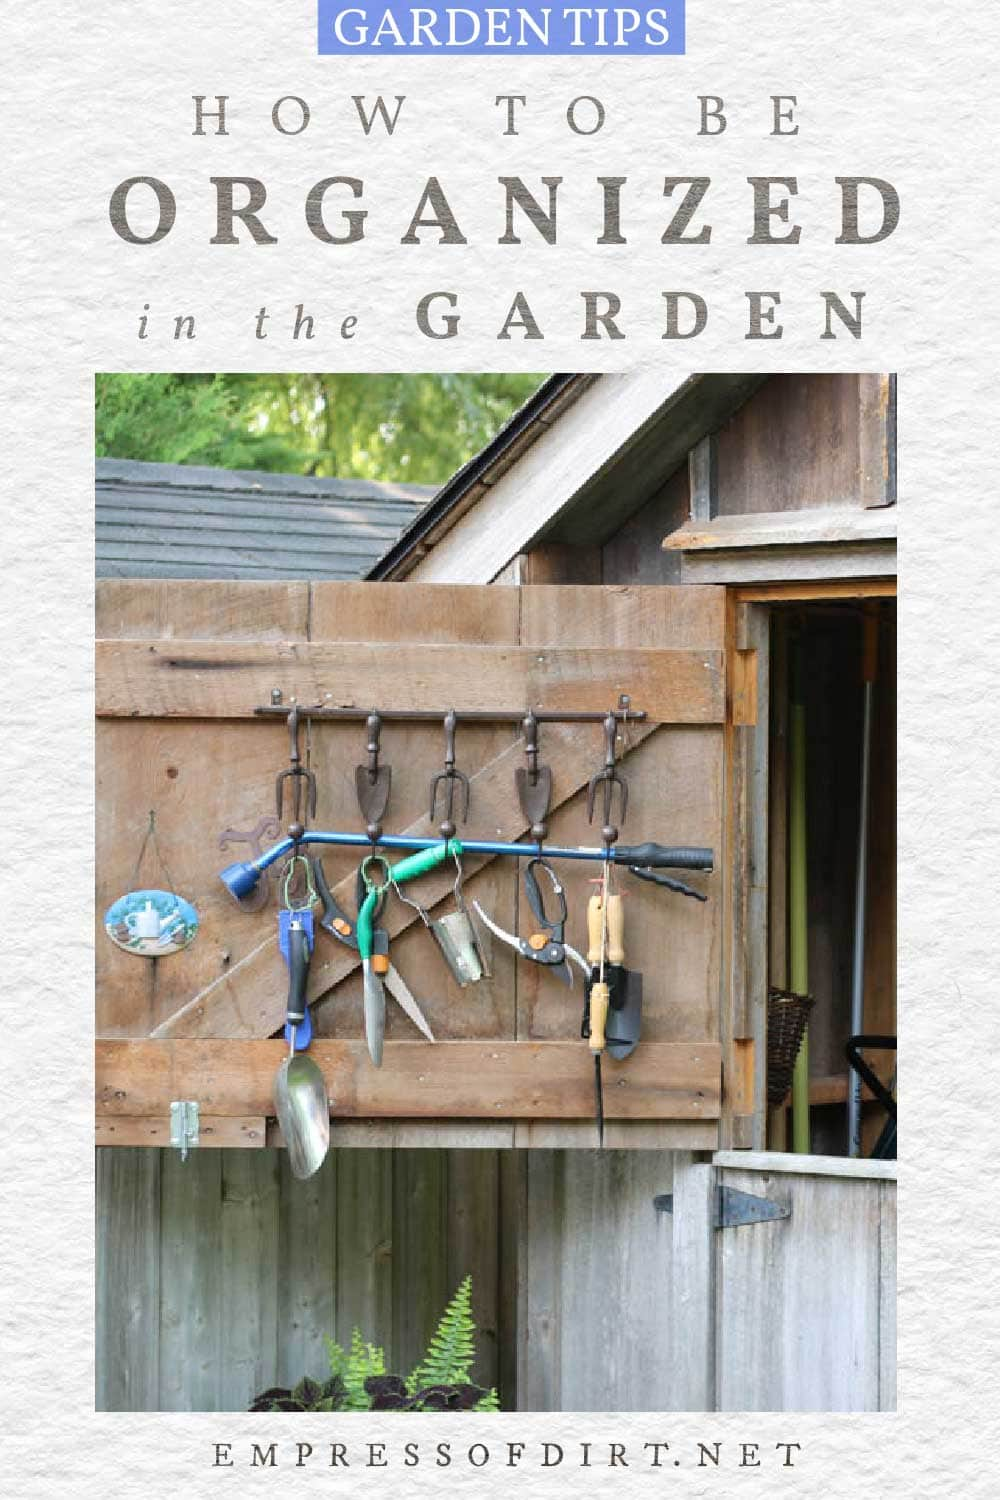 Garden tools hanging on the door of a shed.